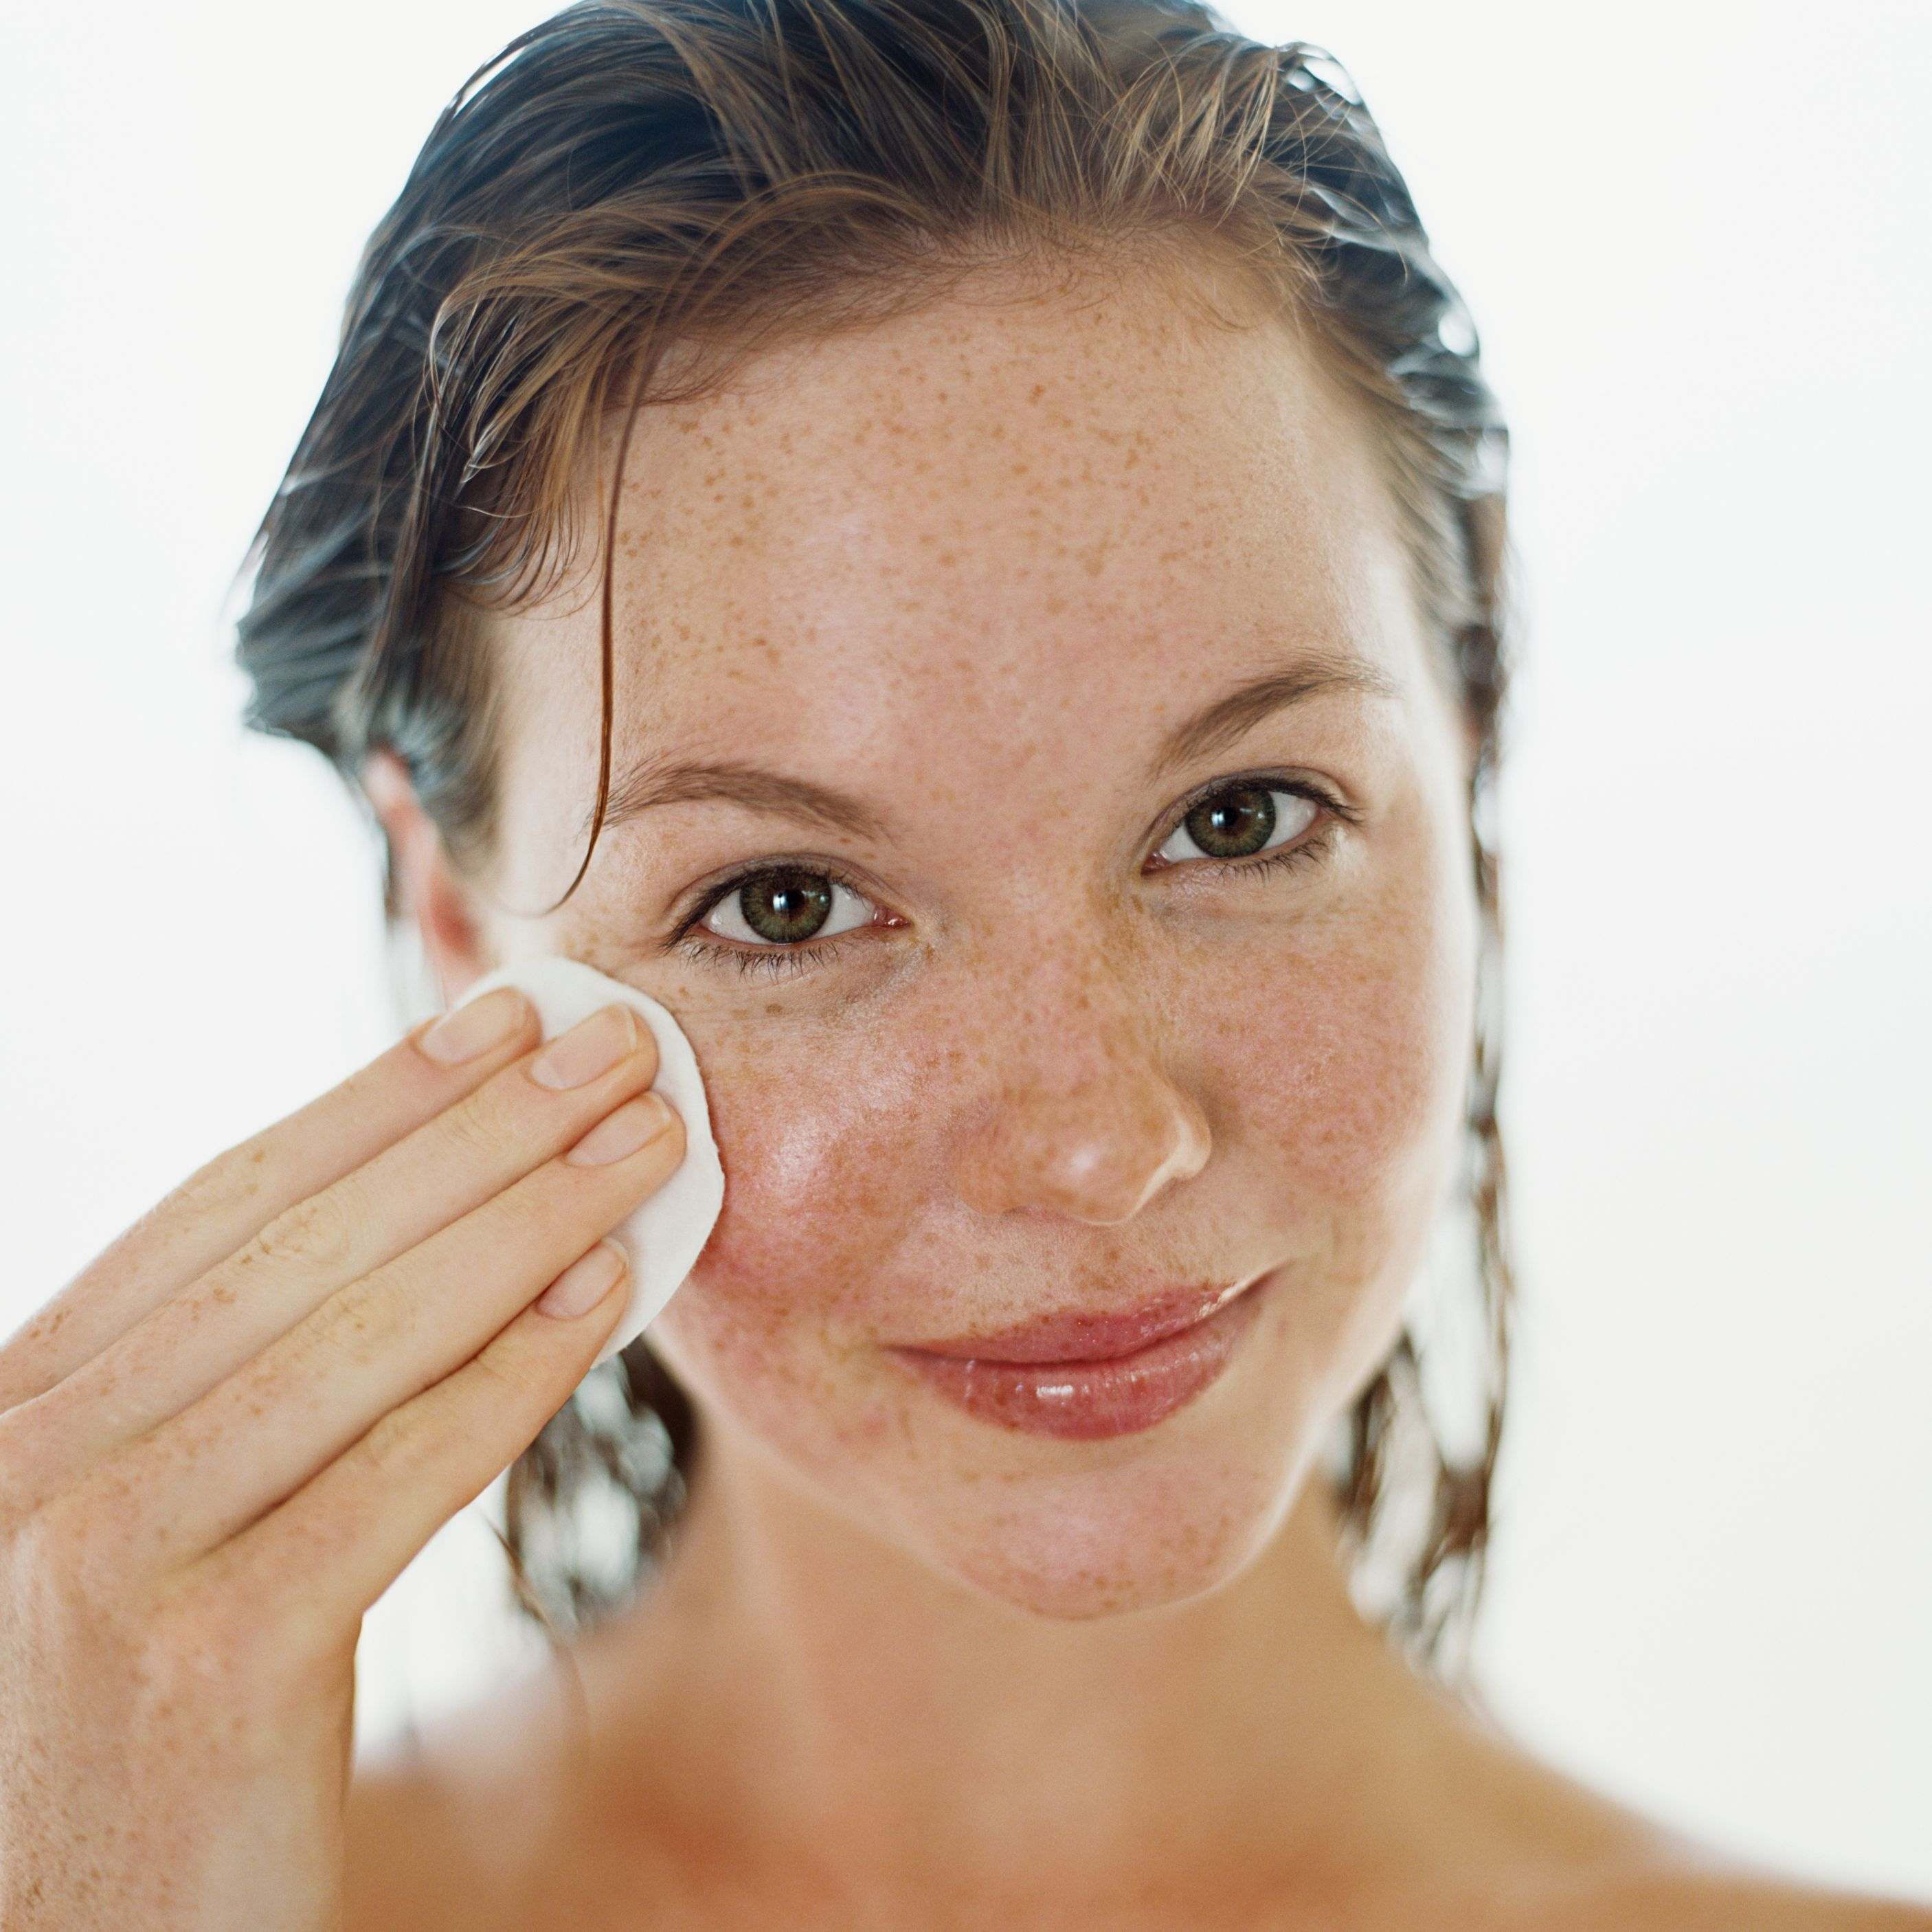 How To Completely Remove Your Makeup